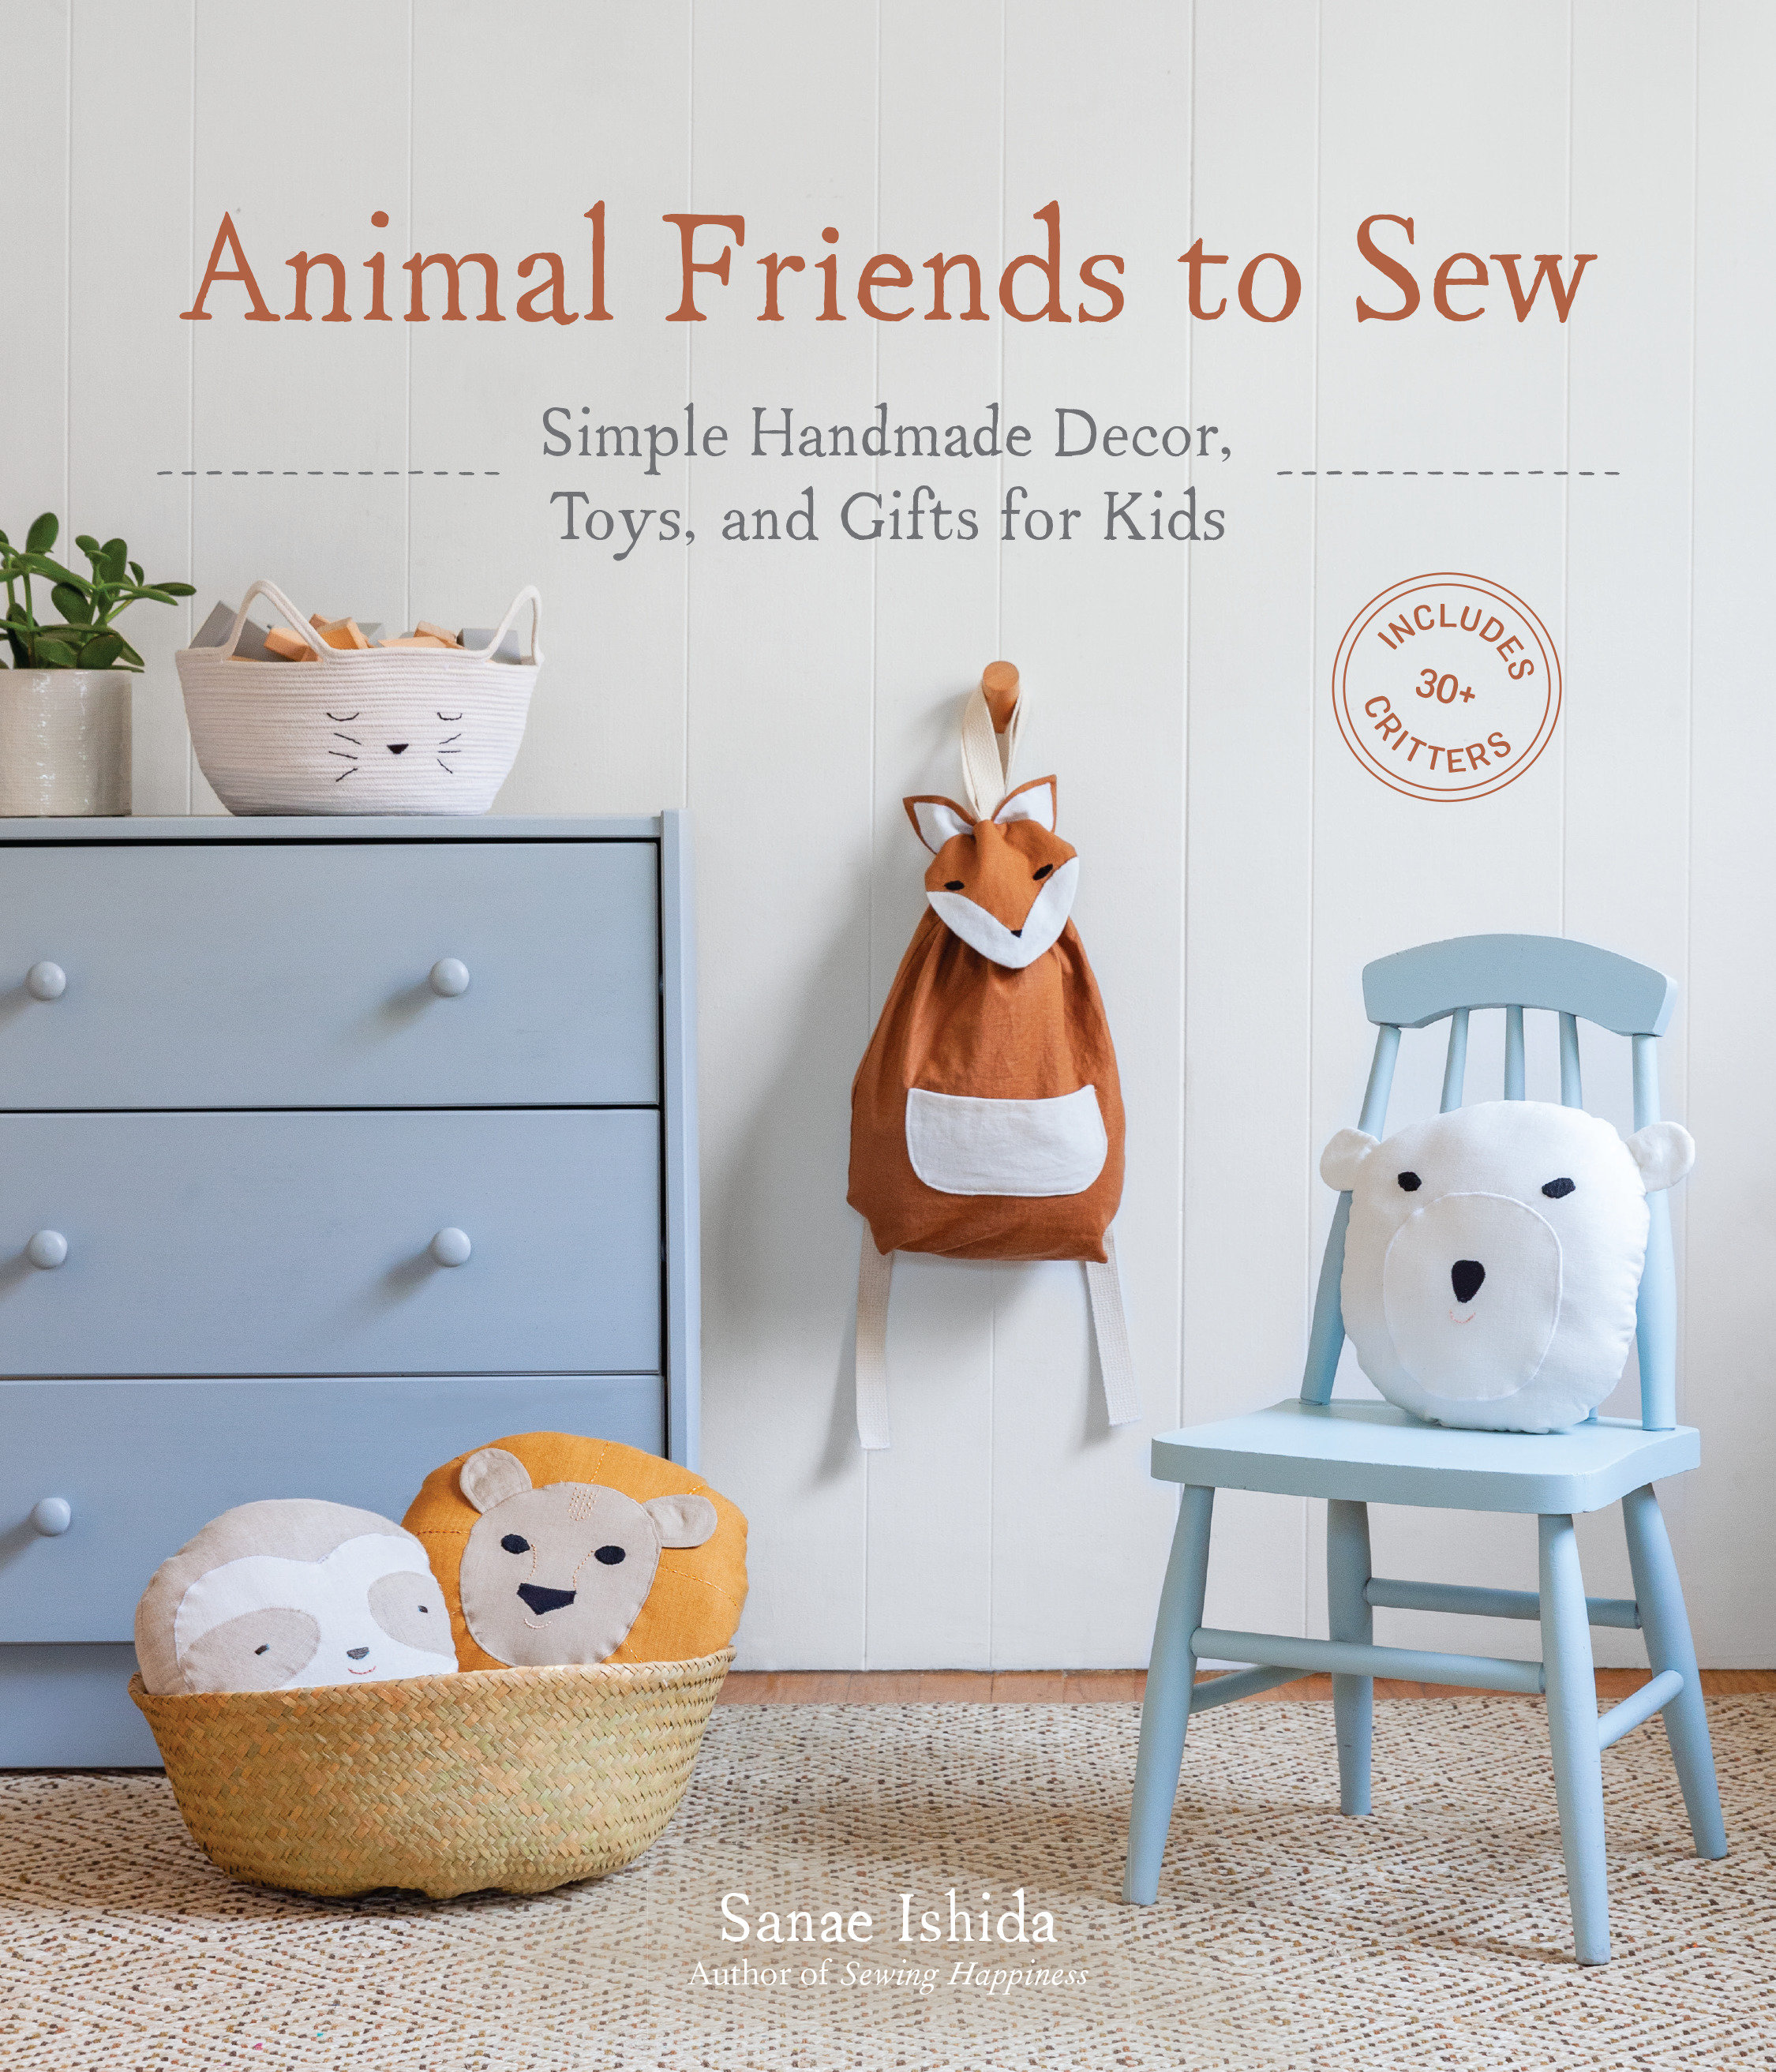 Animal Friends to Sew Simple Handmade Decor, Toys, and Gifts for Kids